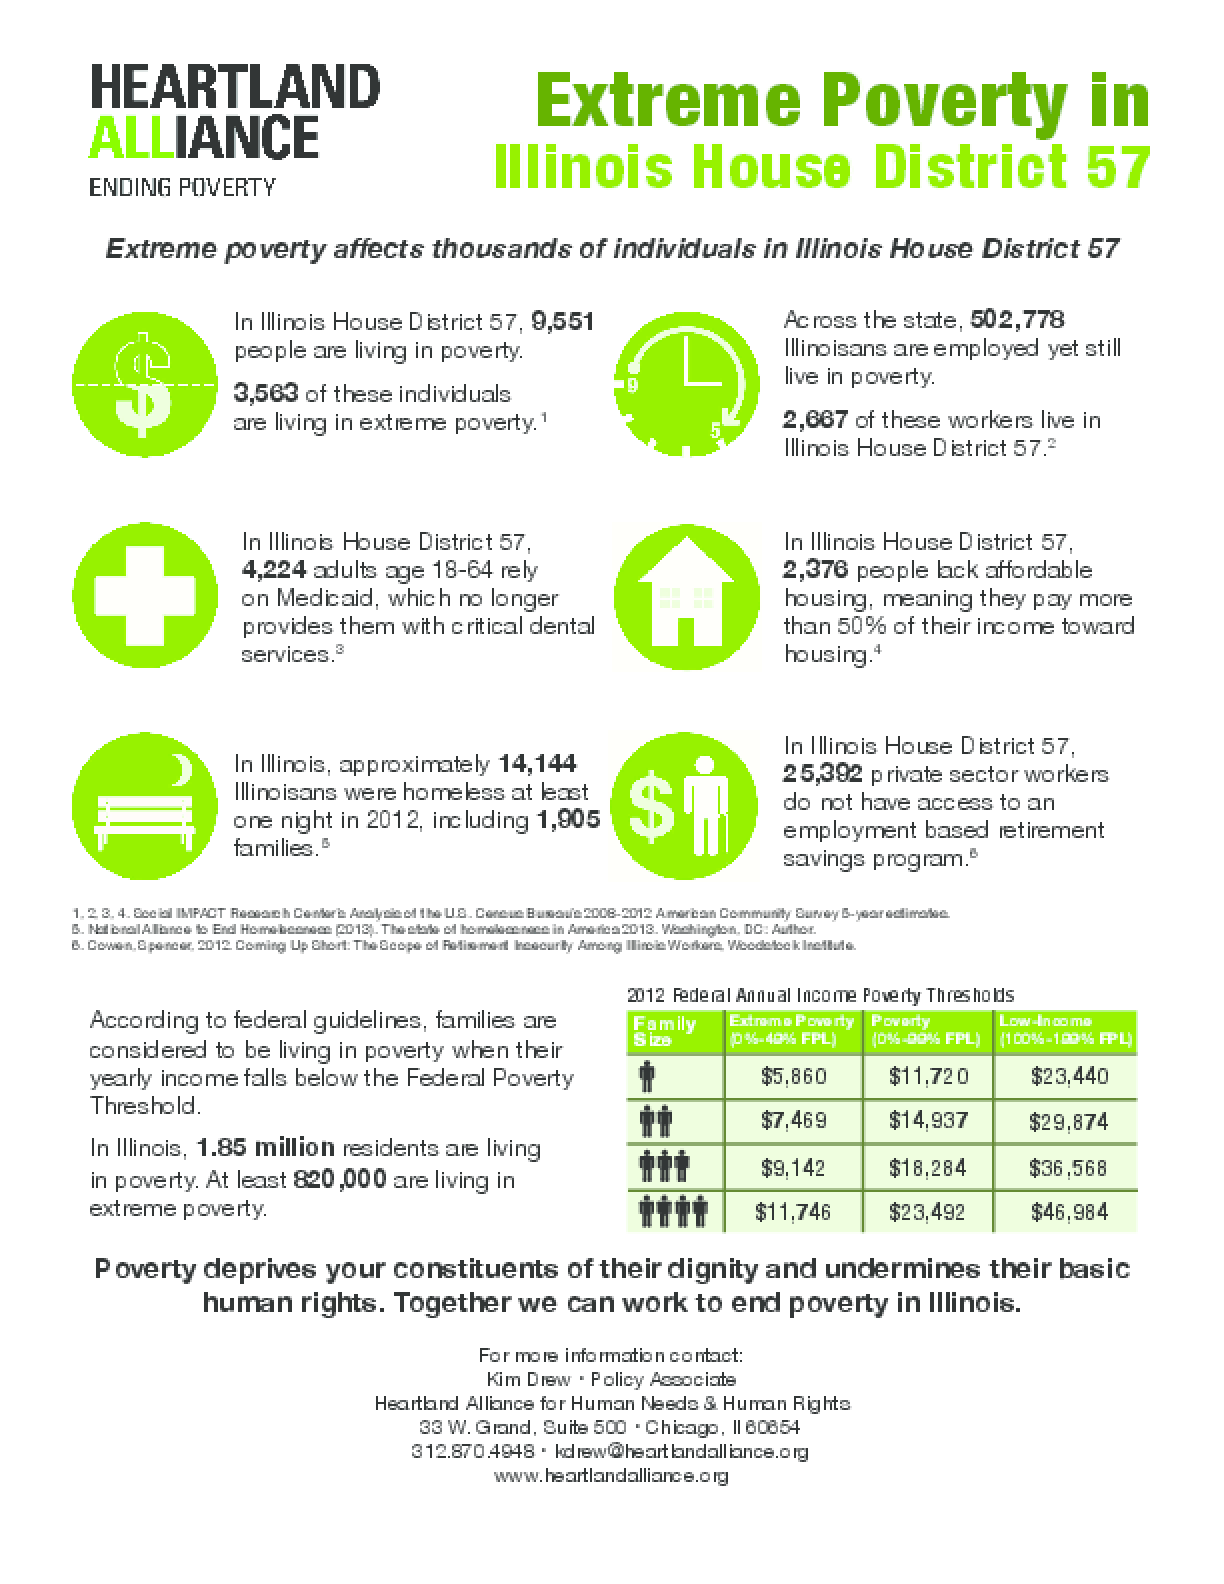 Poverty Fact Sheets for Illinois House District 57